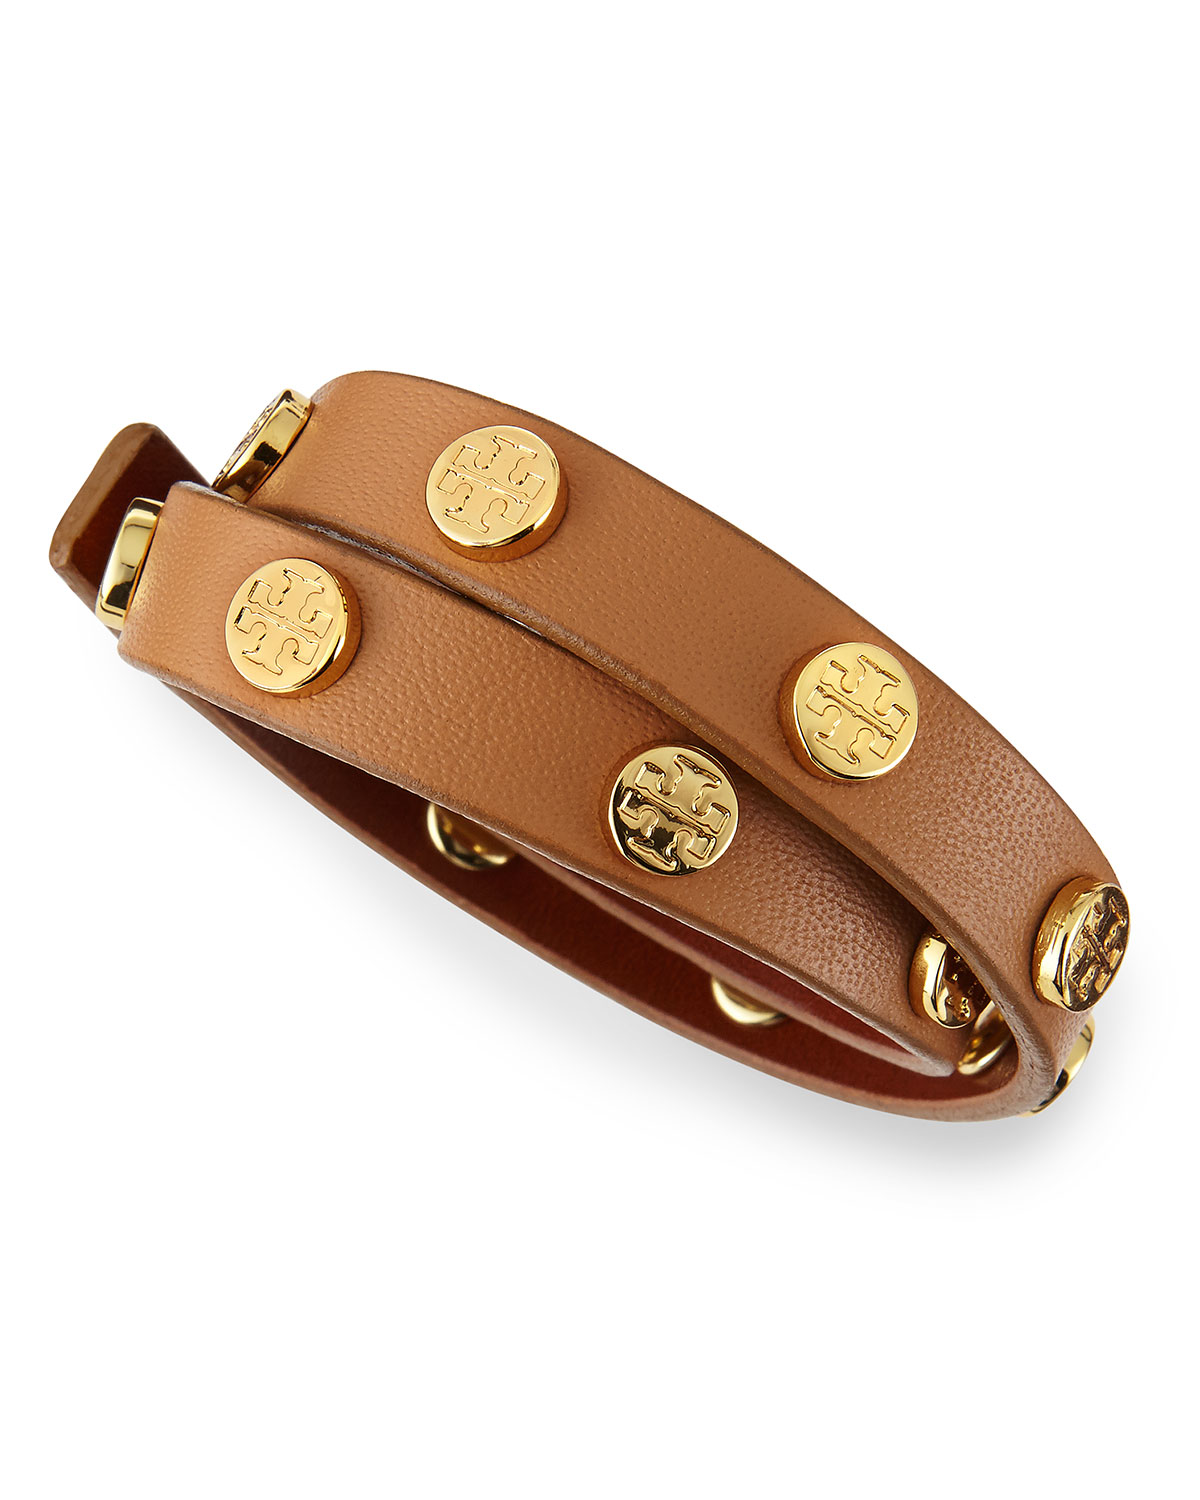 Logo Studded Leather Wrap Bracelet Aged Vachetta